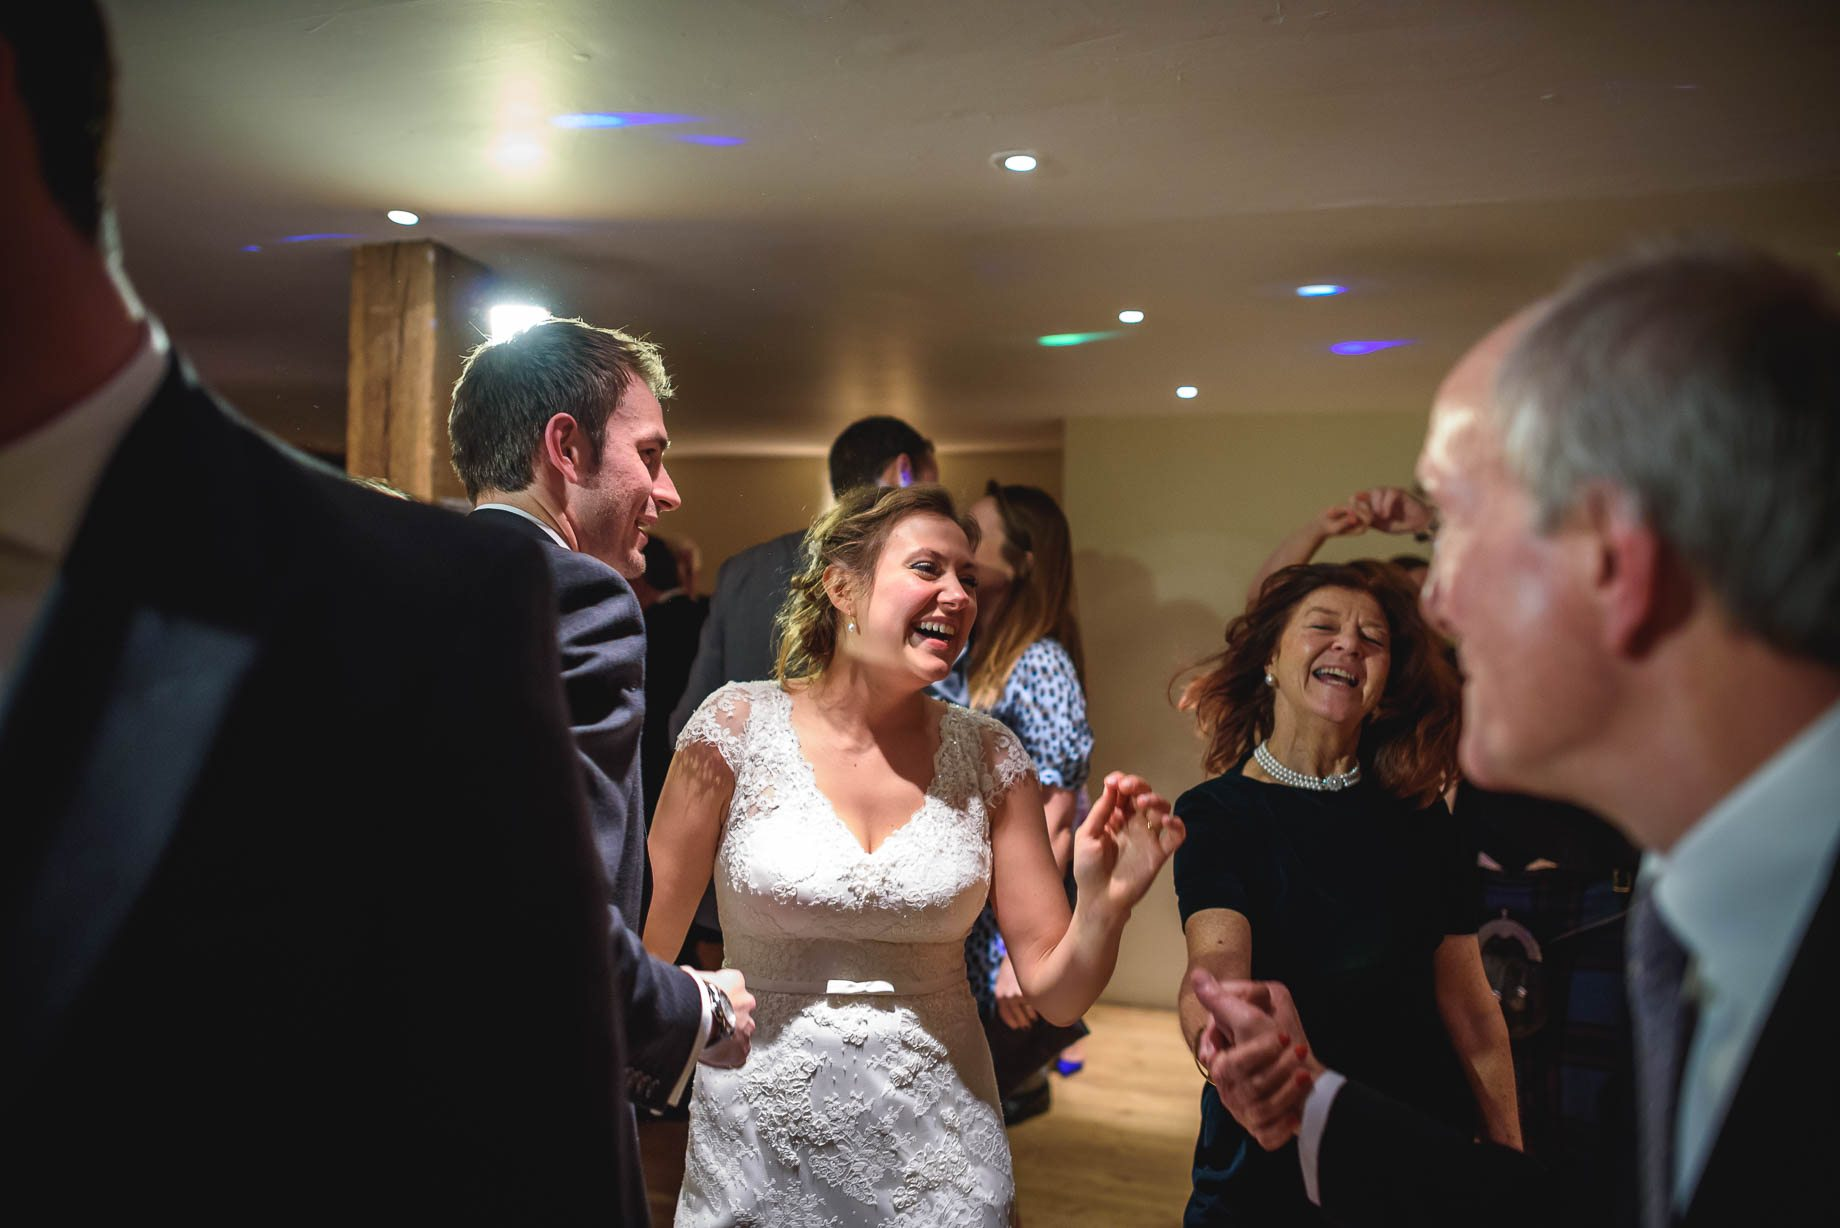 Bury Court Barn wedding photography - Ashley and Henry by Guy Collier Photography (175 of 188)